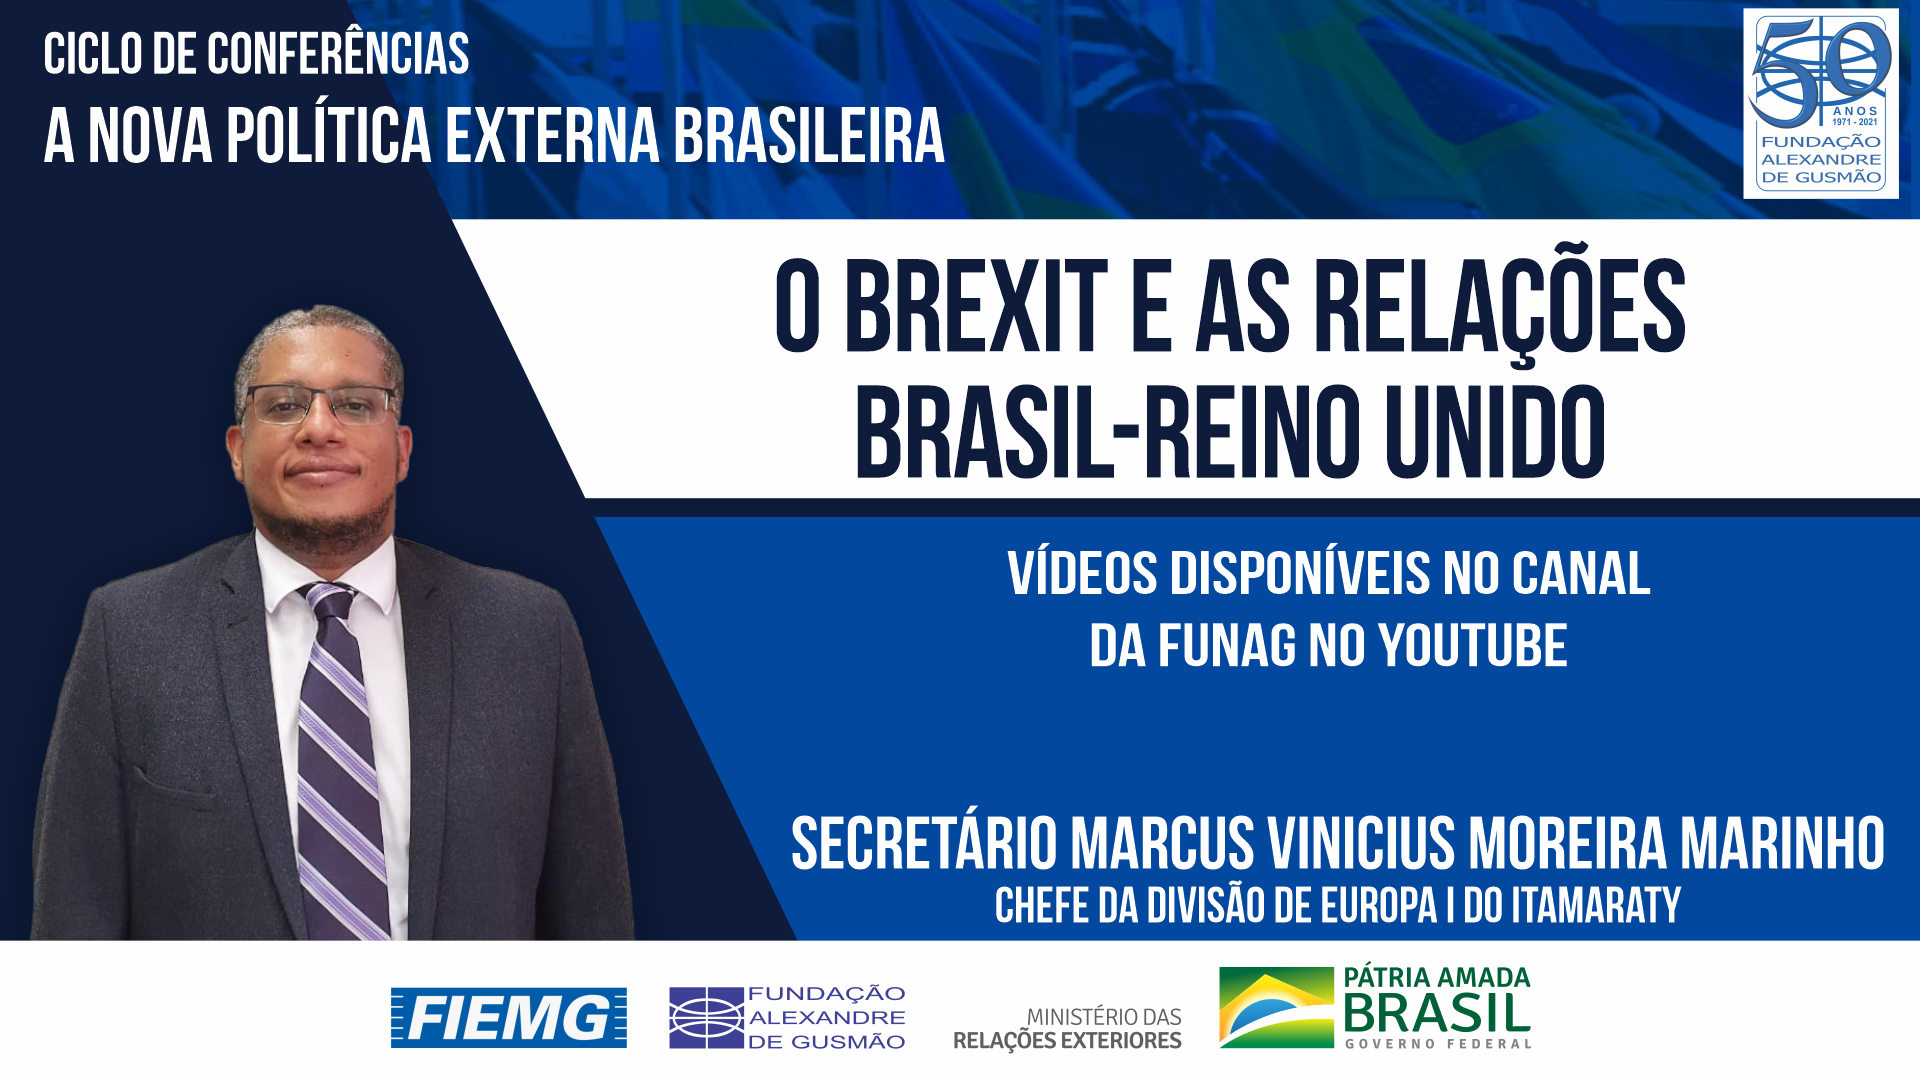 Watch the videos of the conference of the Head of the Europe I Division of the Ministry of Foreign Affairs, Secretary Marcus Vinicius Moreira Marinho